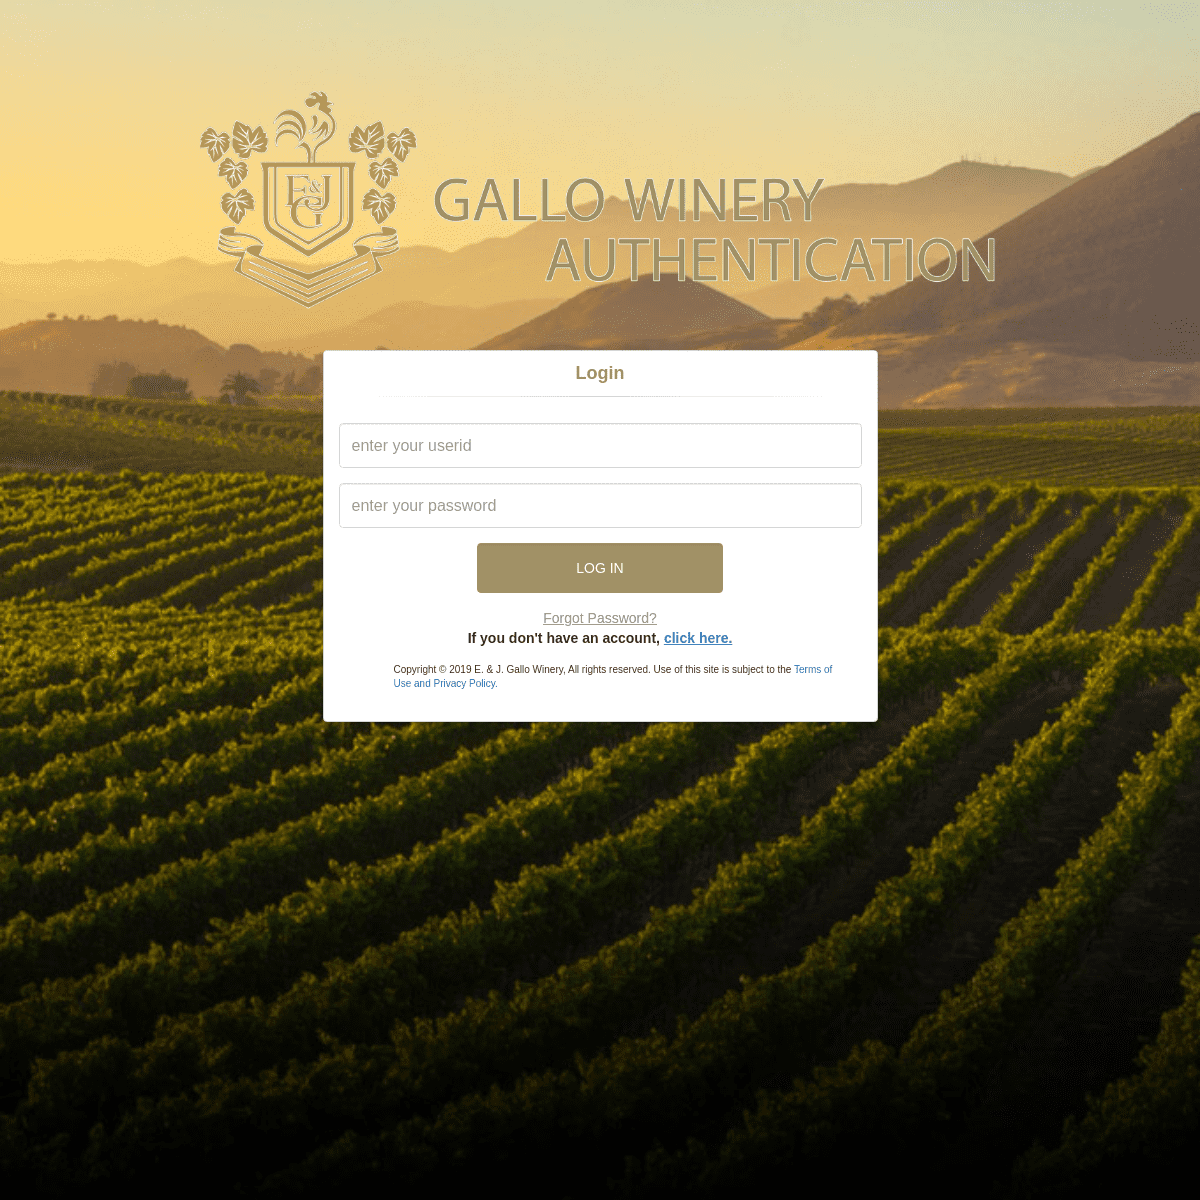 A complete backup of gallocontenthub.com